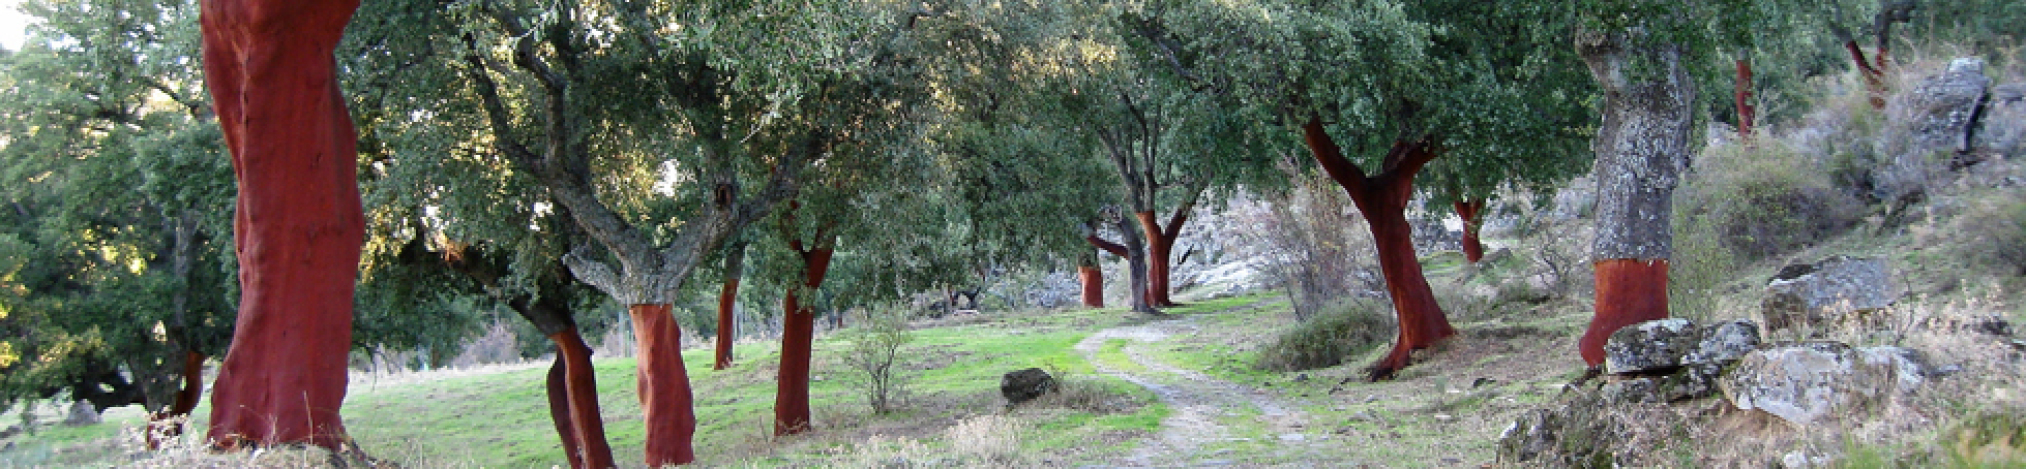 Cork oak forest in Plasencia.